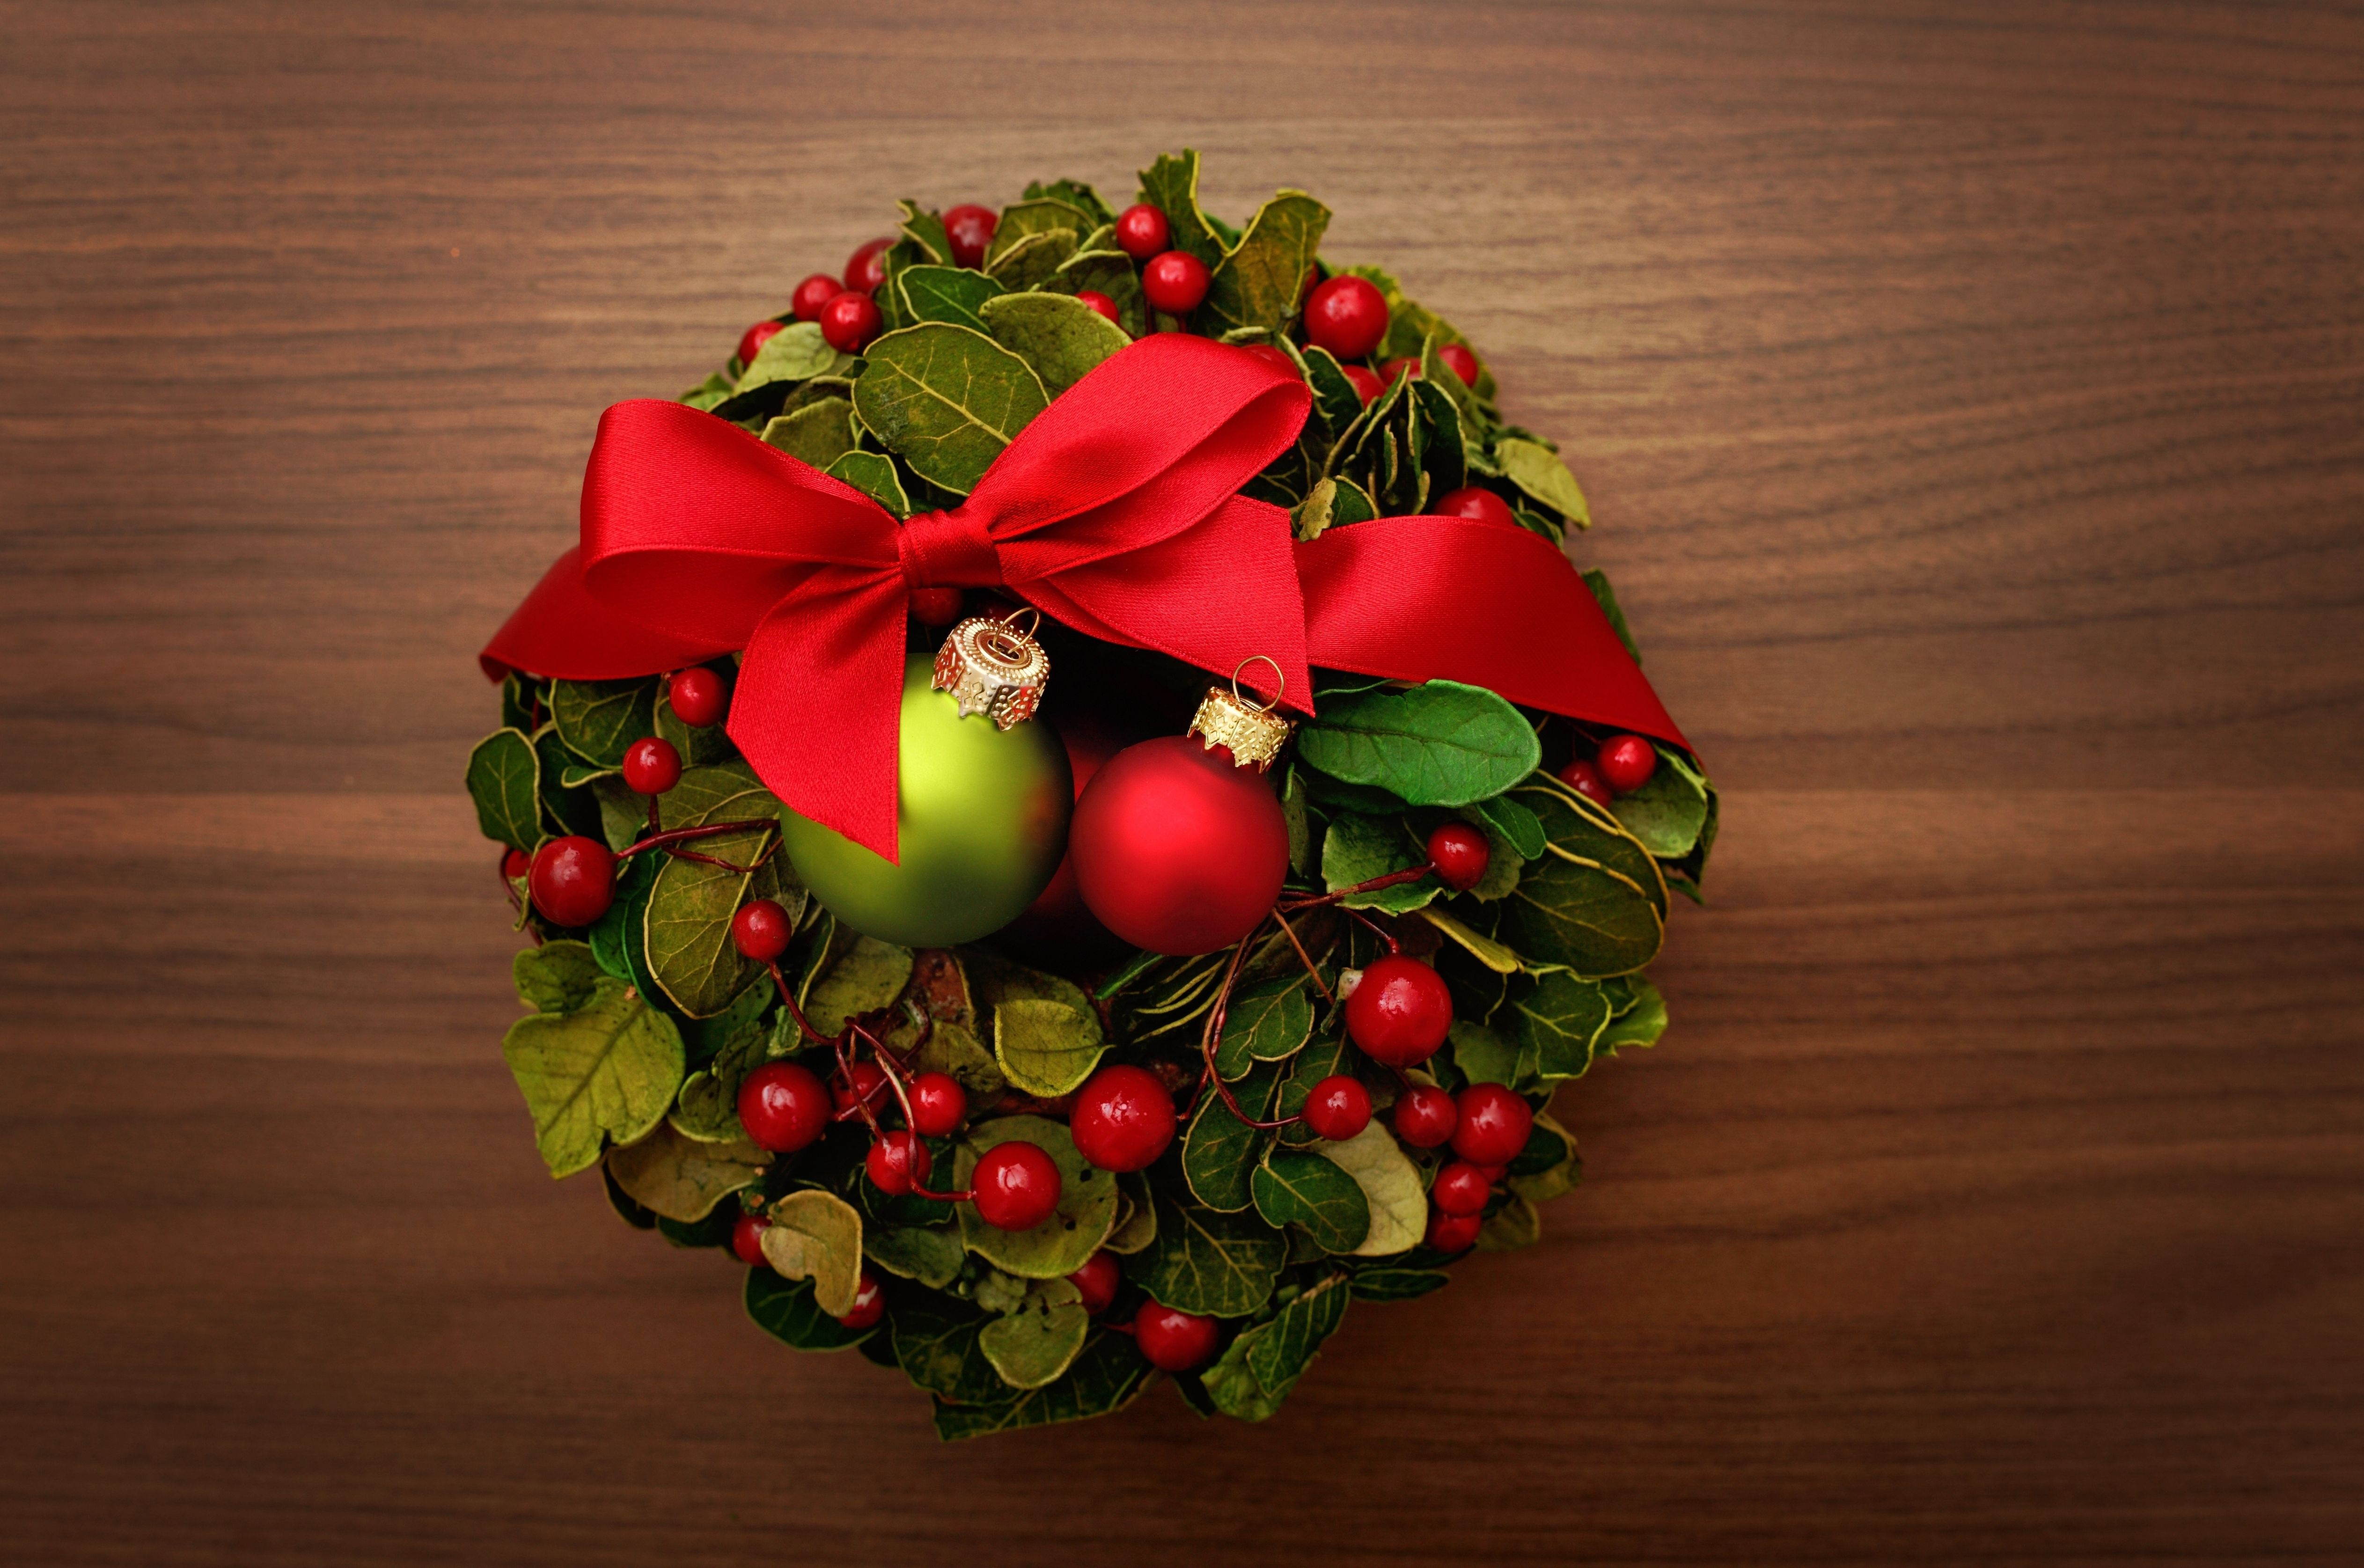 Crown Hd Wallpaper Christmas 4k Ultra Hd Wallpaper And Background Image